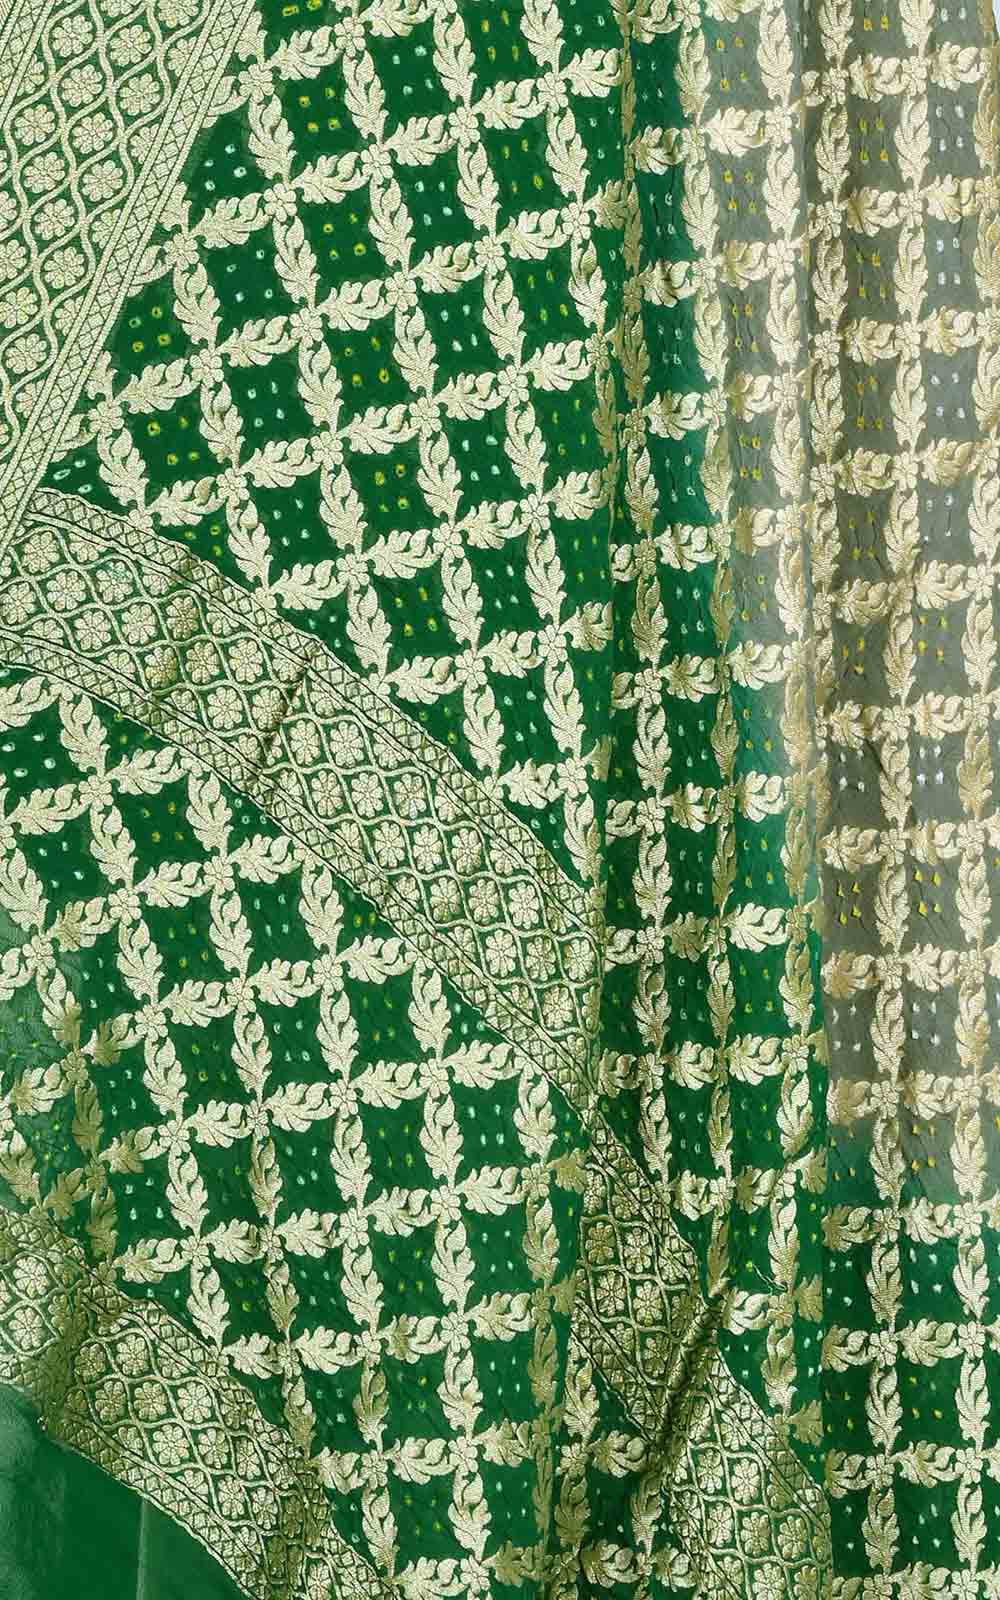 Green Grey khaddi georgette Bandhani Banarasi dupatta (2) Close up